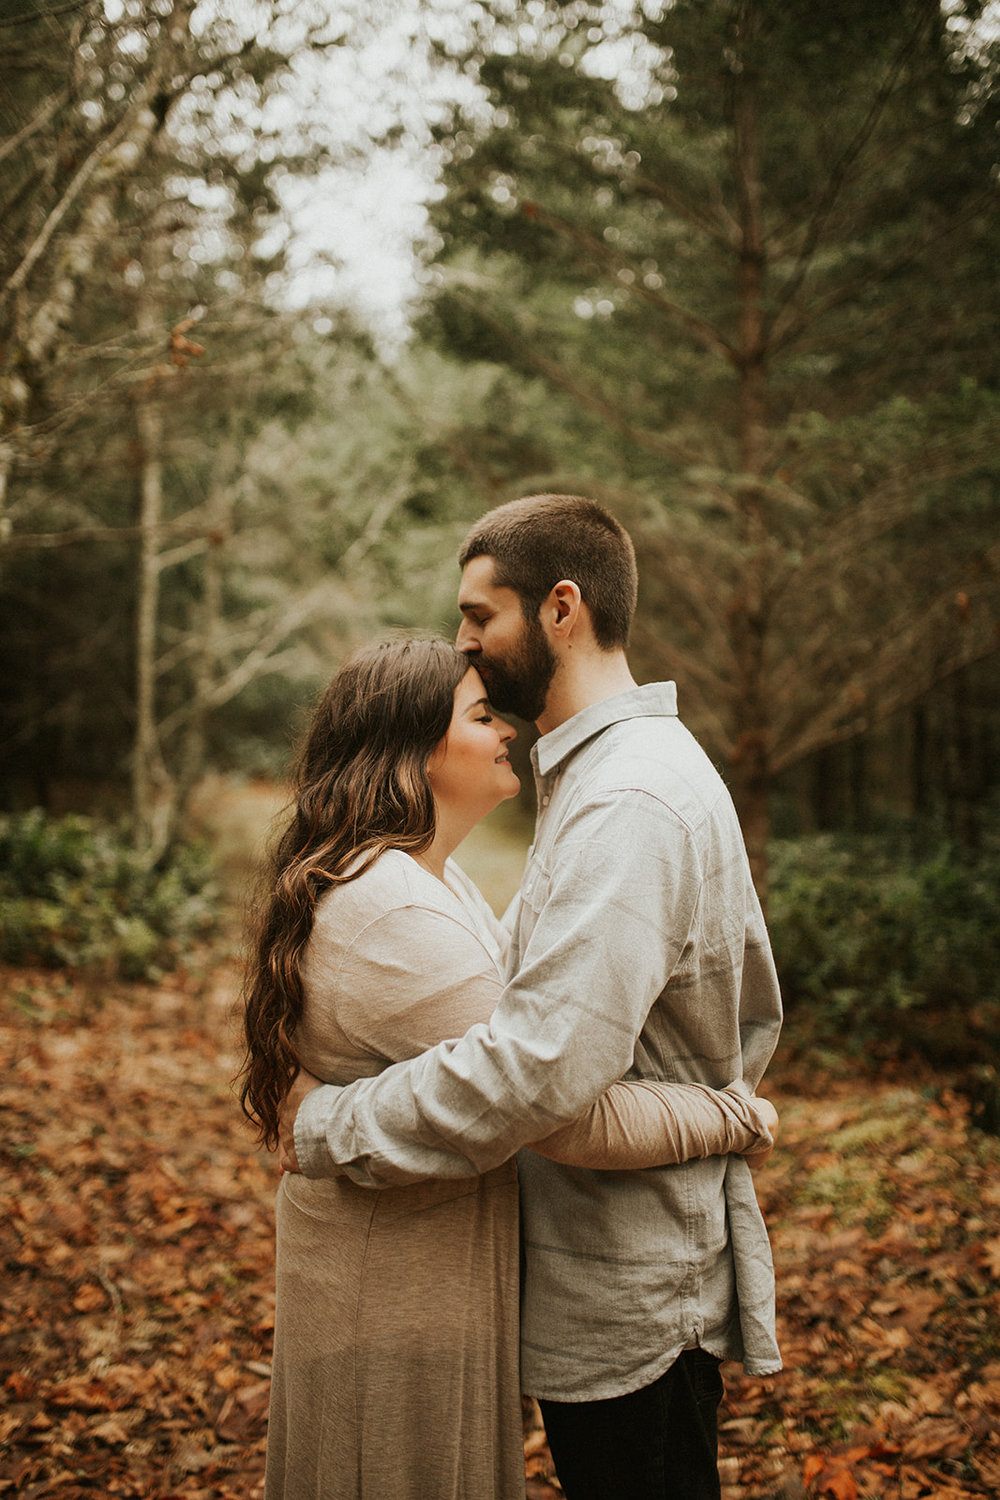 Intimate + Sweet Engagement Session on Forested Oregon Property with Garrett and Heidi